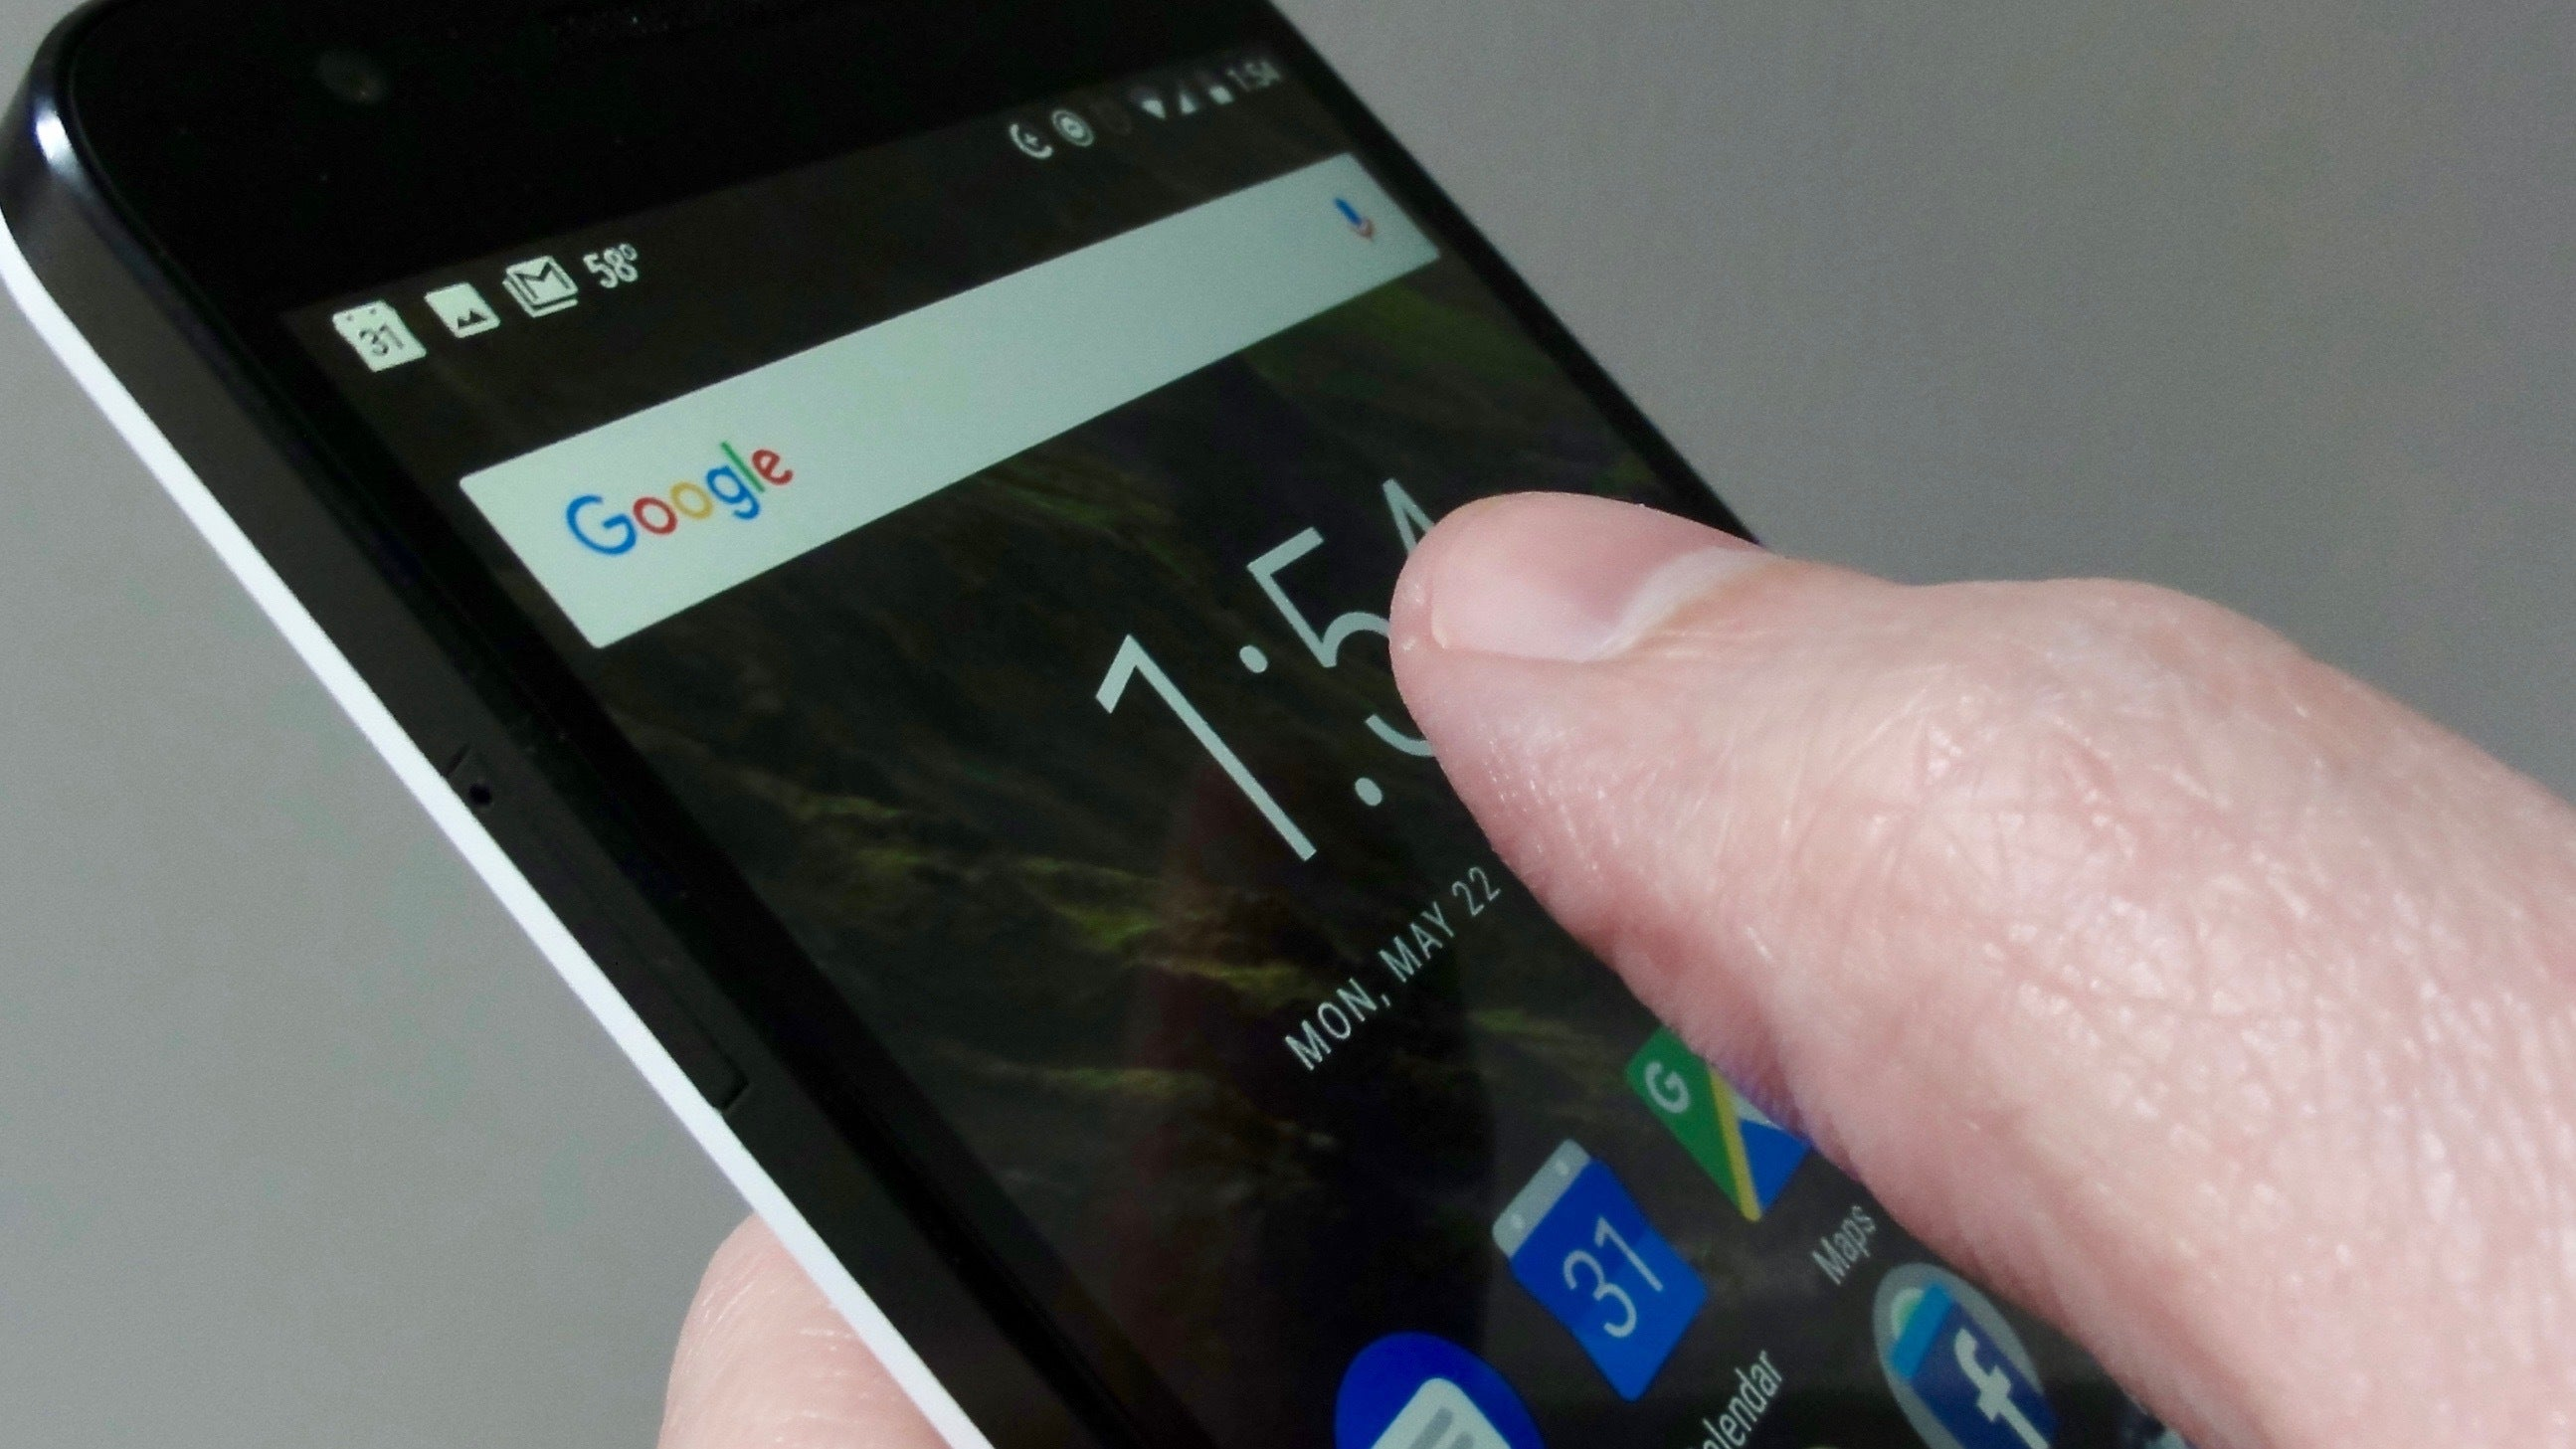 6 ways to make the most of Android's Clock app | PCWorld